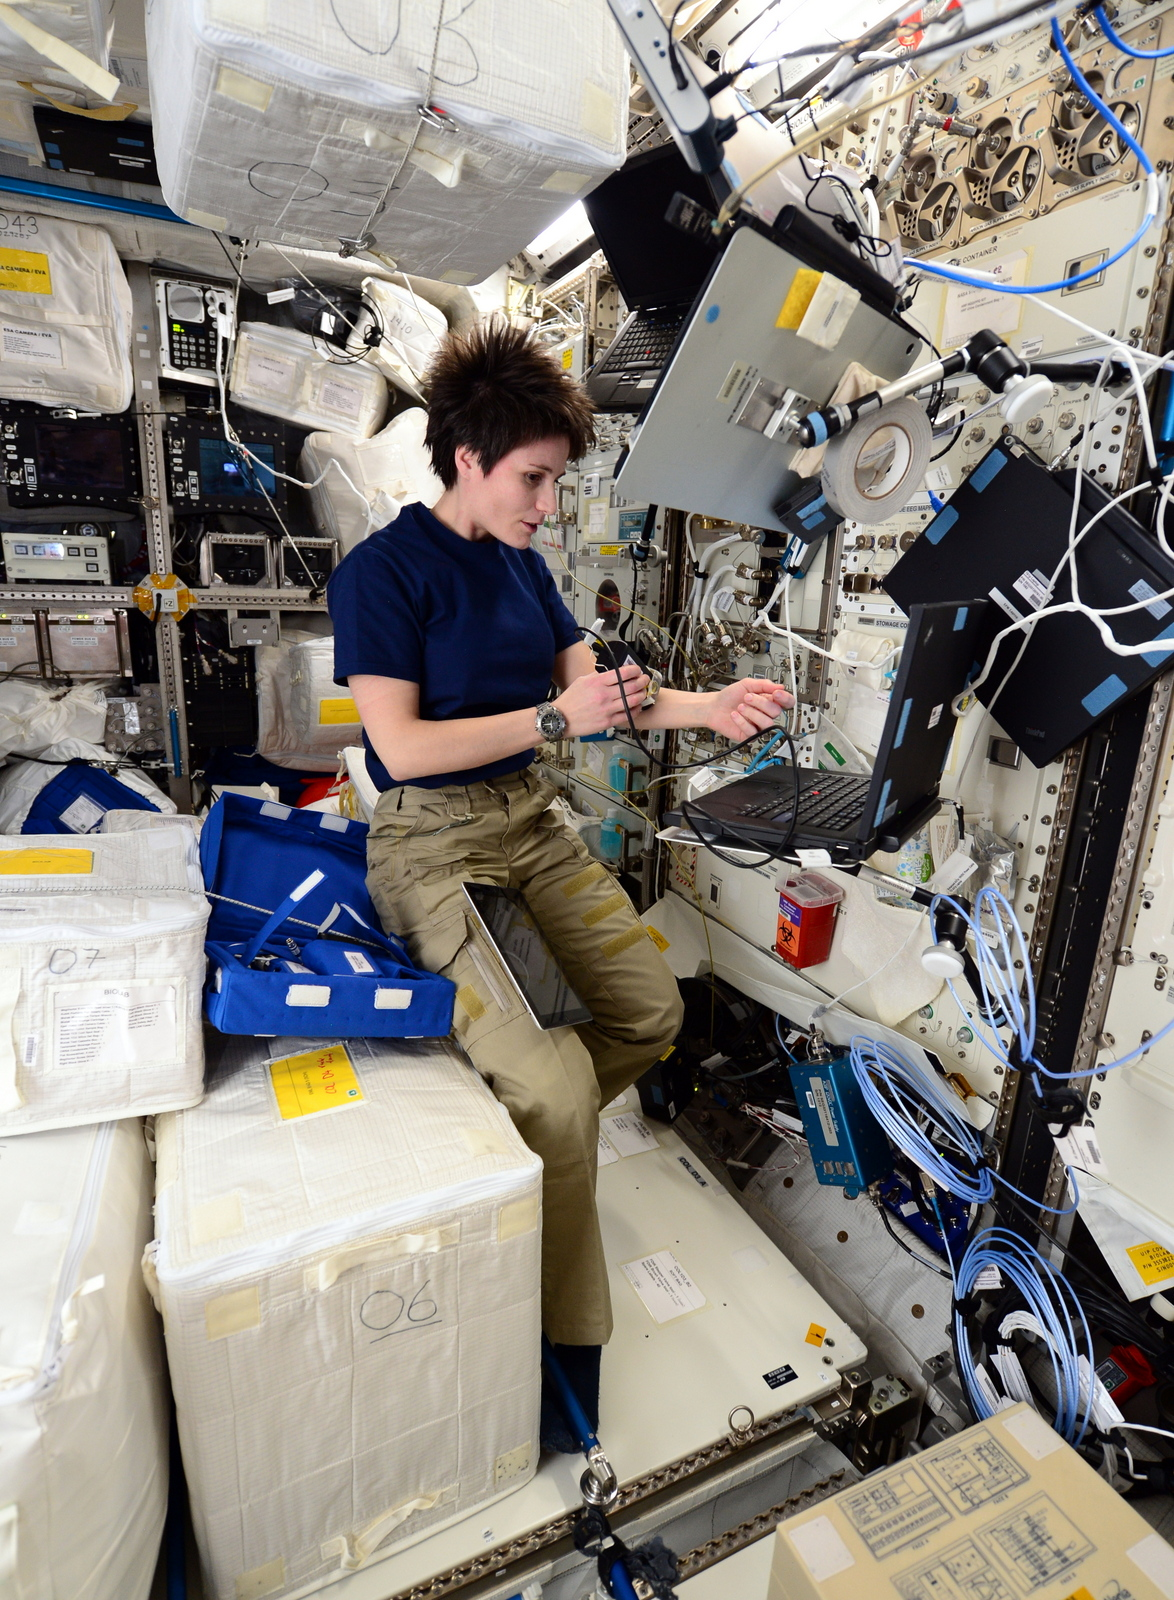 astronaut working in space - photo #39